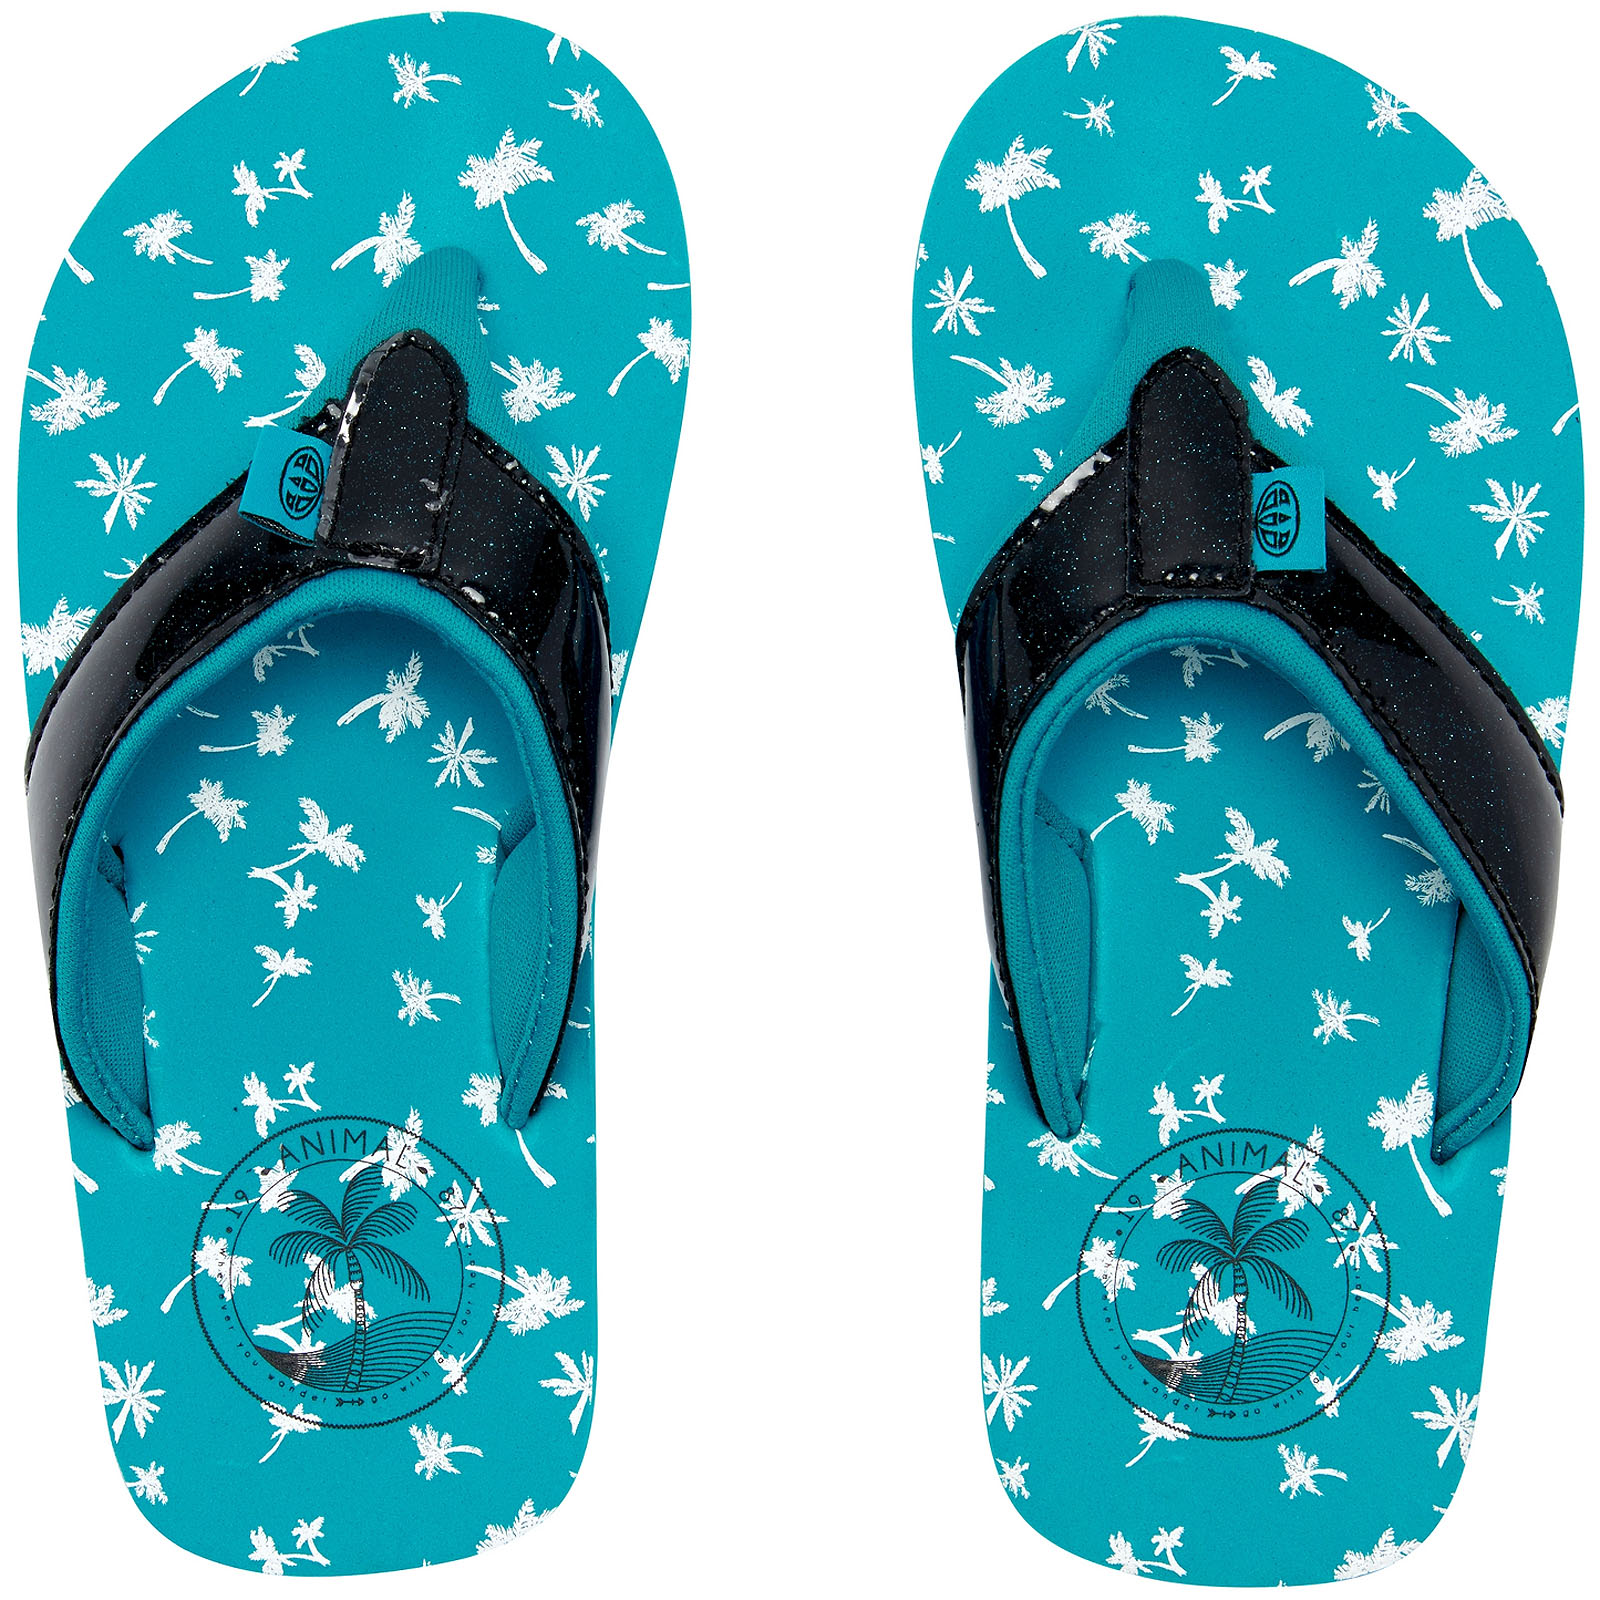 7b7f1df0a31b41 Animal Bluebird Blue Swish - Glitz Girls Flip Flop Girls UK 1. About this  product. Picture 1 of 3  Picture 2 of 3 ...